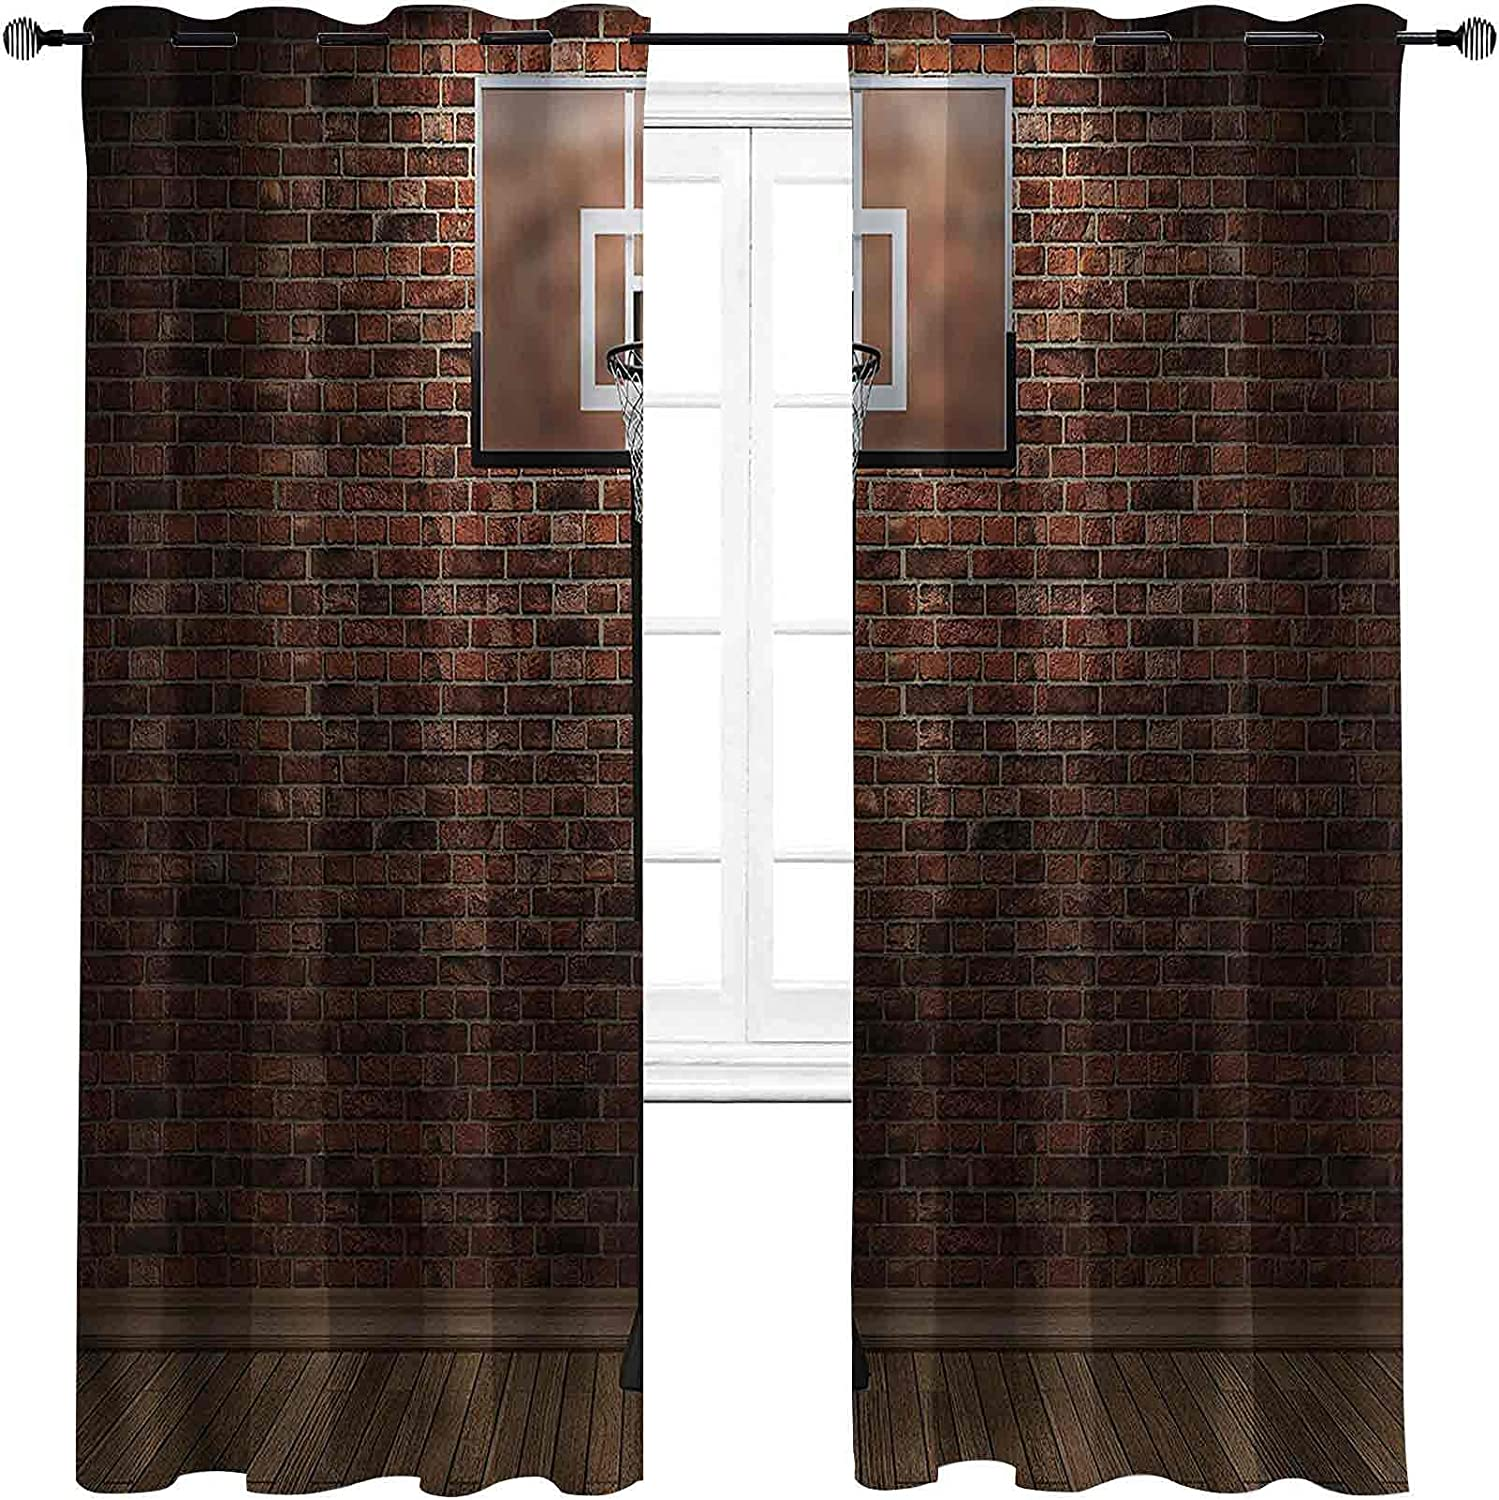 Basketball High-Strength Blackout Field Curtains NEW Max 56% OFF before selling ☆ Spo